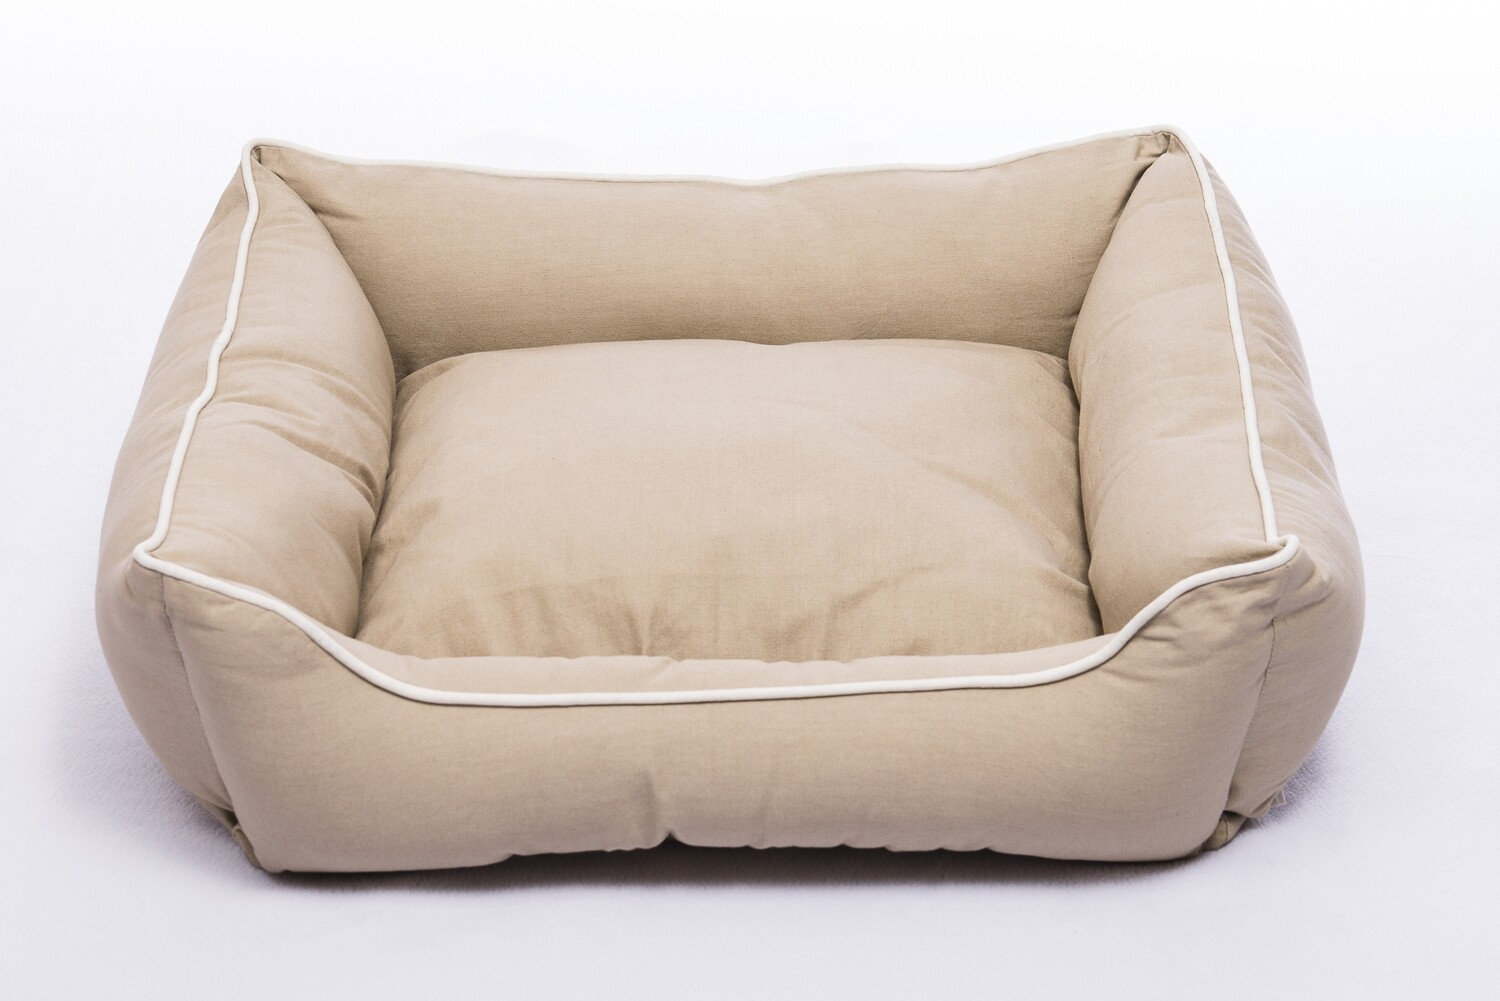 DGS Lounger Bed X Small - Sand